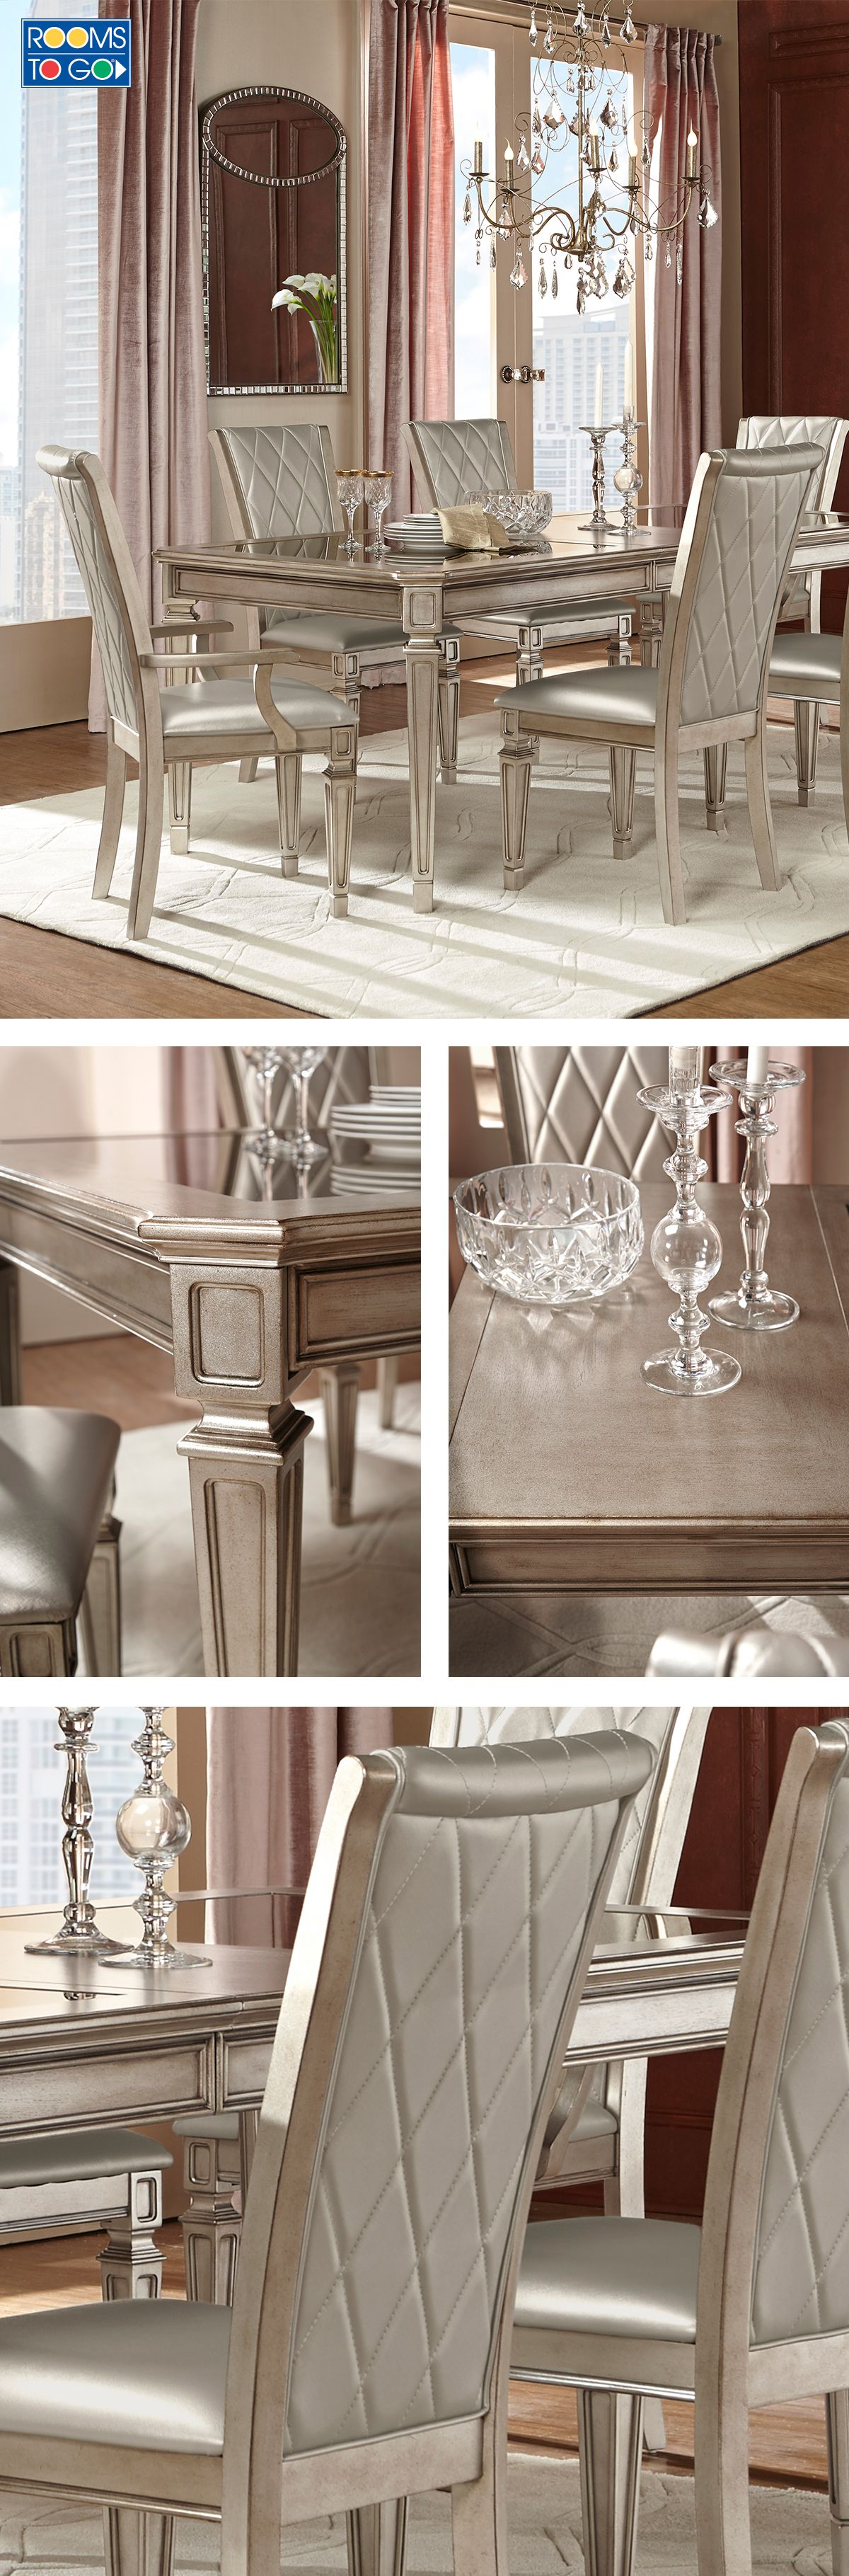 Our Sophie Mirrored Dining Table elegantly reflects its